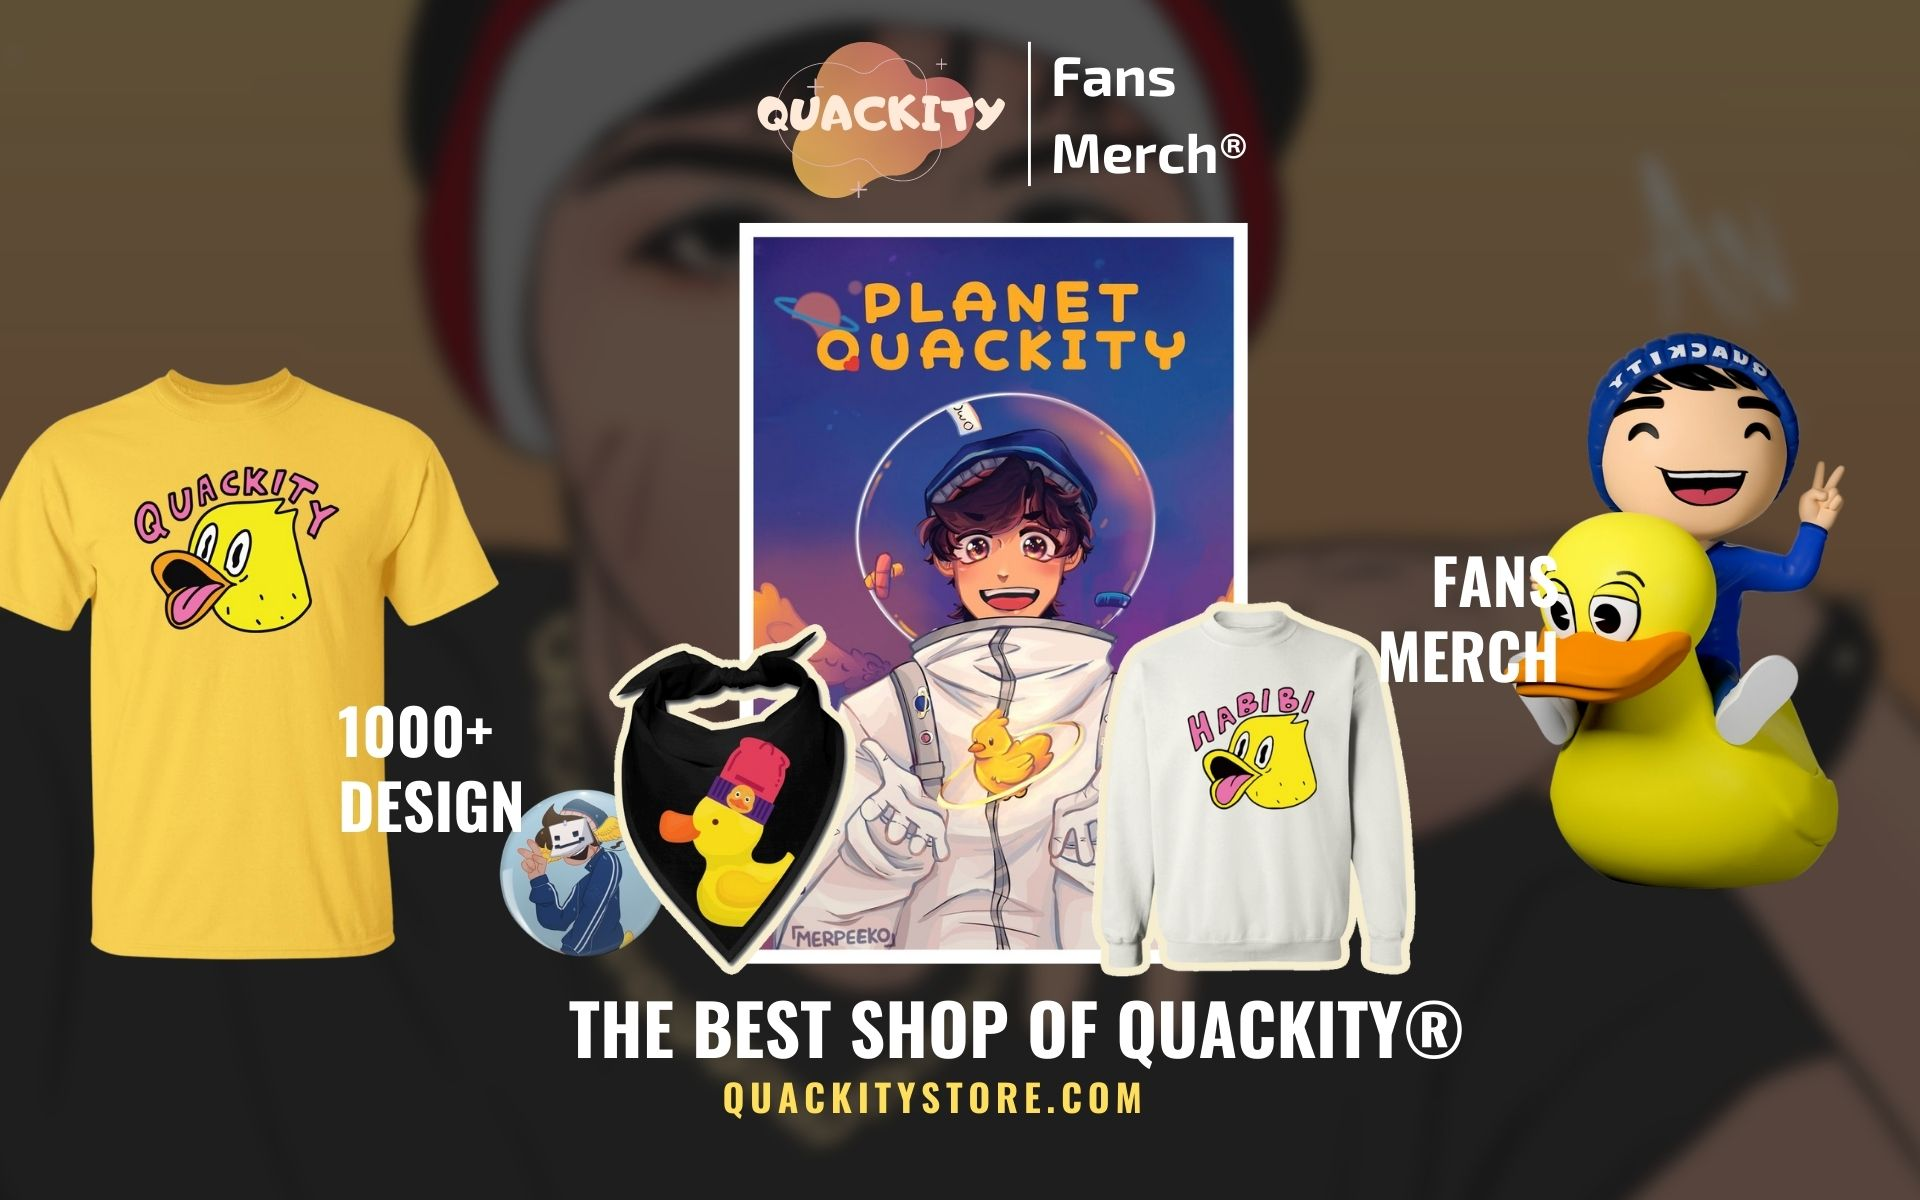 Quackity Merch Web Banner - Quackity Store